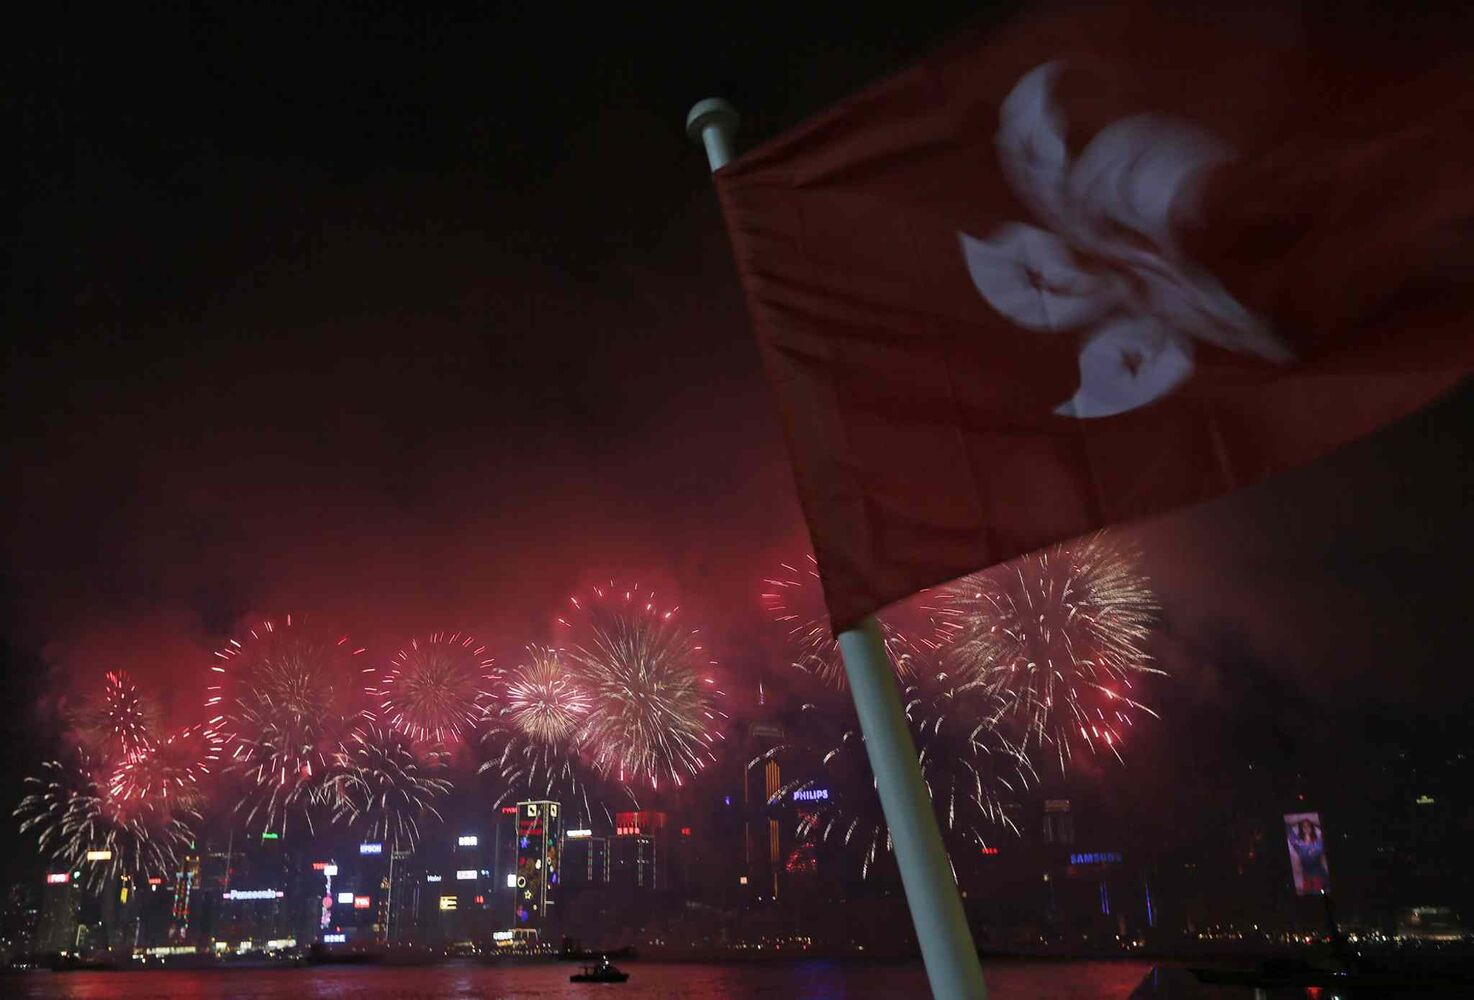 Fireworks explode over the Victoria Harbour to celebrate the Chinese Lunar New Year in Hong Kong on Saturday, Feb. 1, 2014.  (Vincent Yu / The Associated Press)